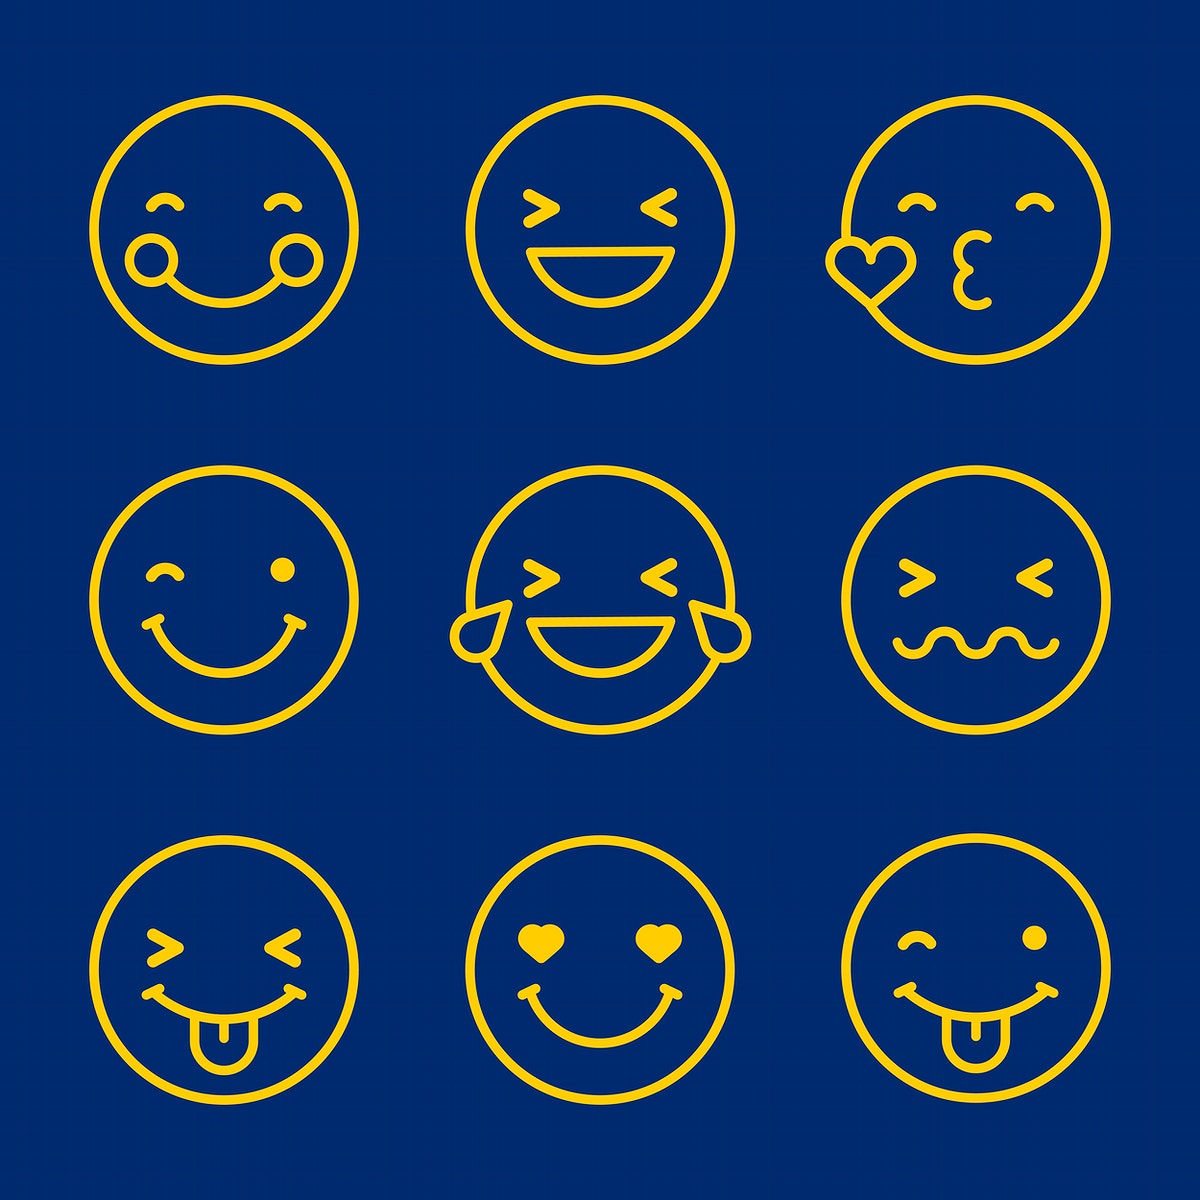 Round yellow outline emoticon set isolated on blue background vector